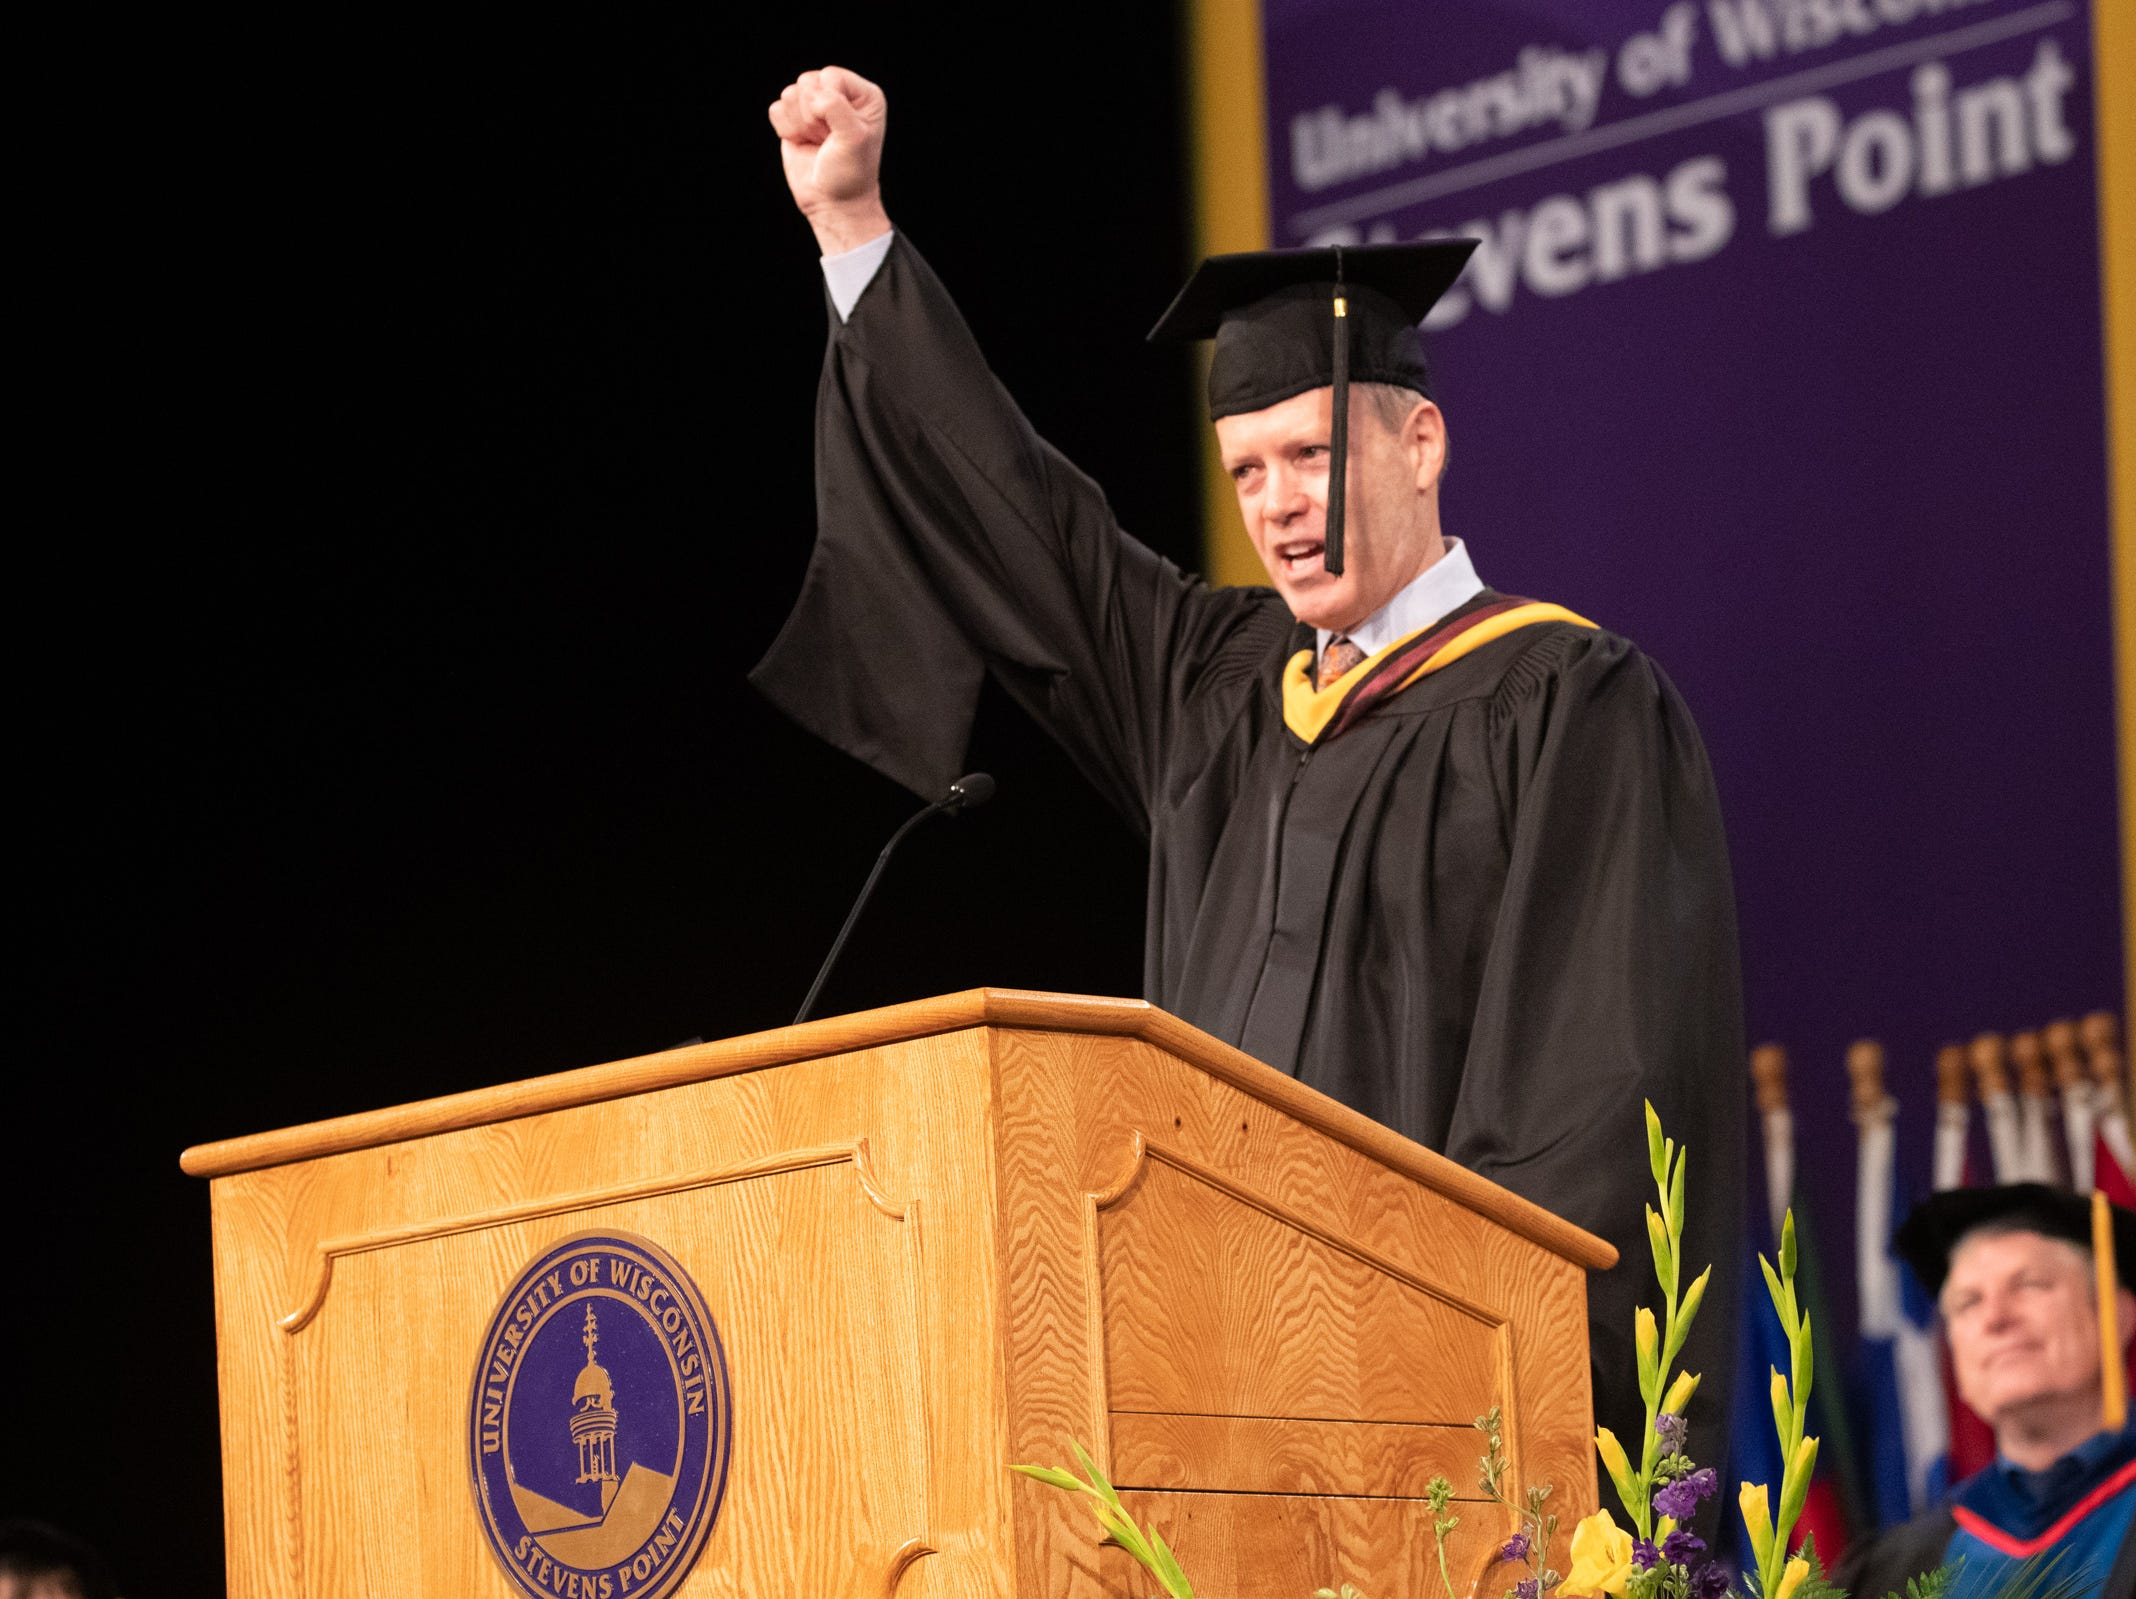 Mike Roman, CEO of 3M and alumnus of UWSP, address graduates and their families during the 2018 winter commencement ceremony at the University of Wisconsin-Stevens Point on Dec. 15, 2018, in Stevens Point.